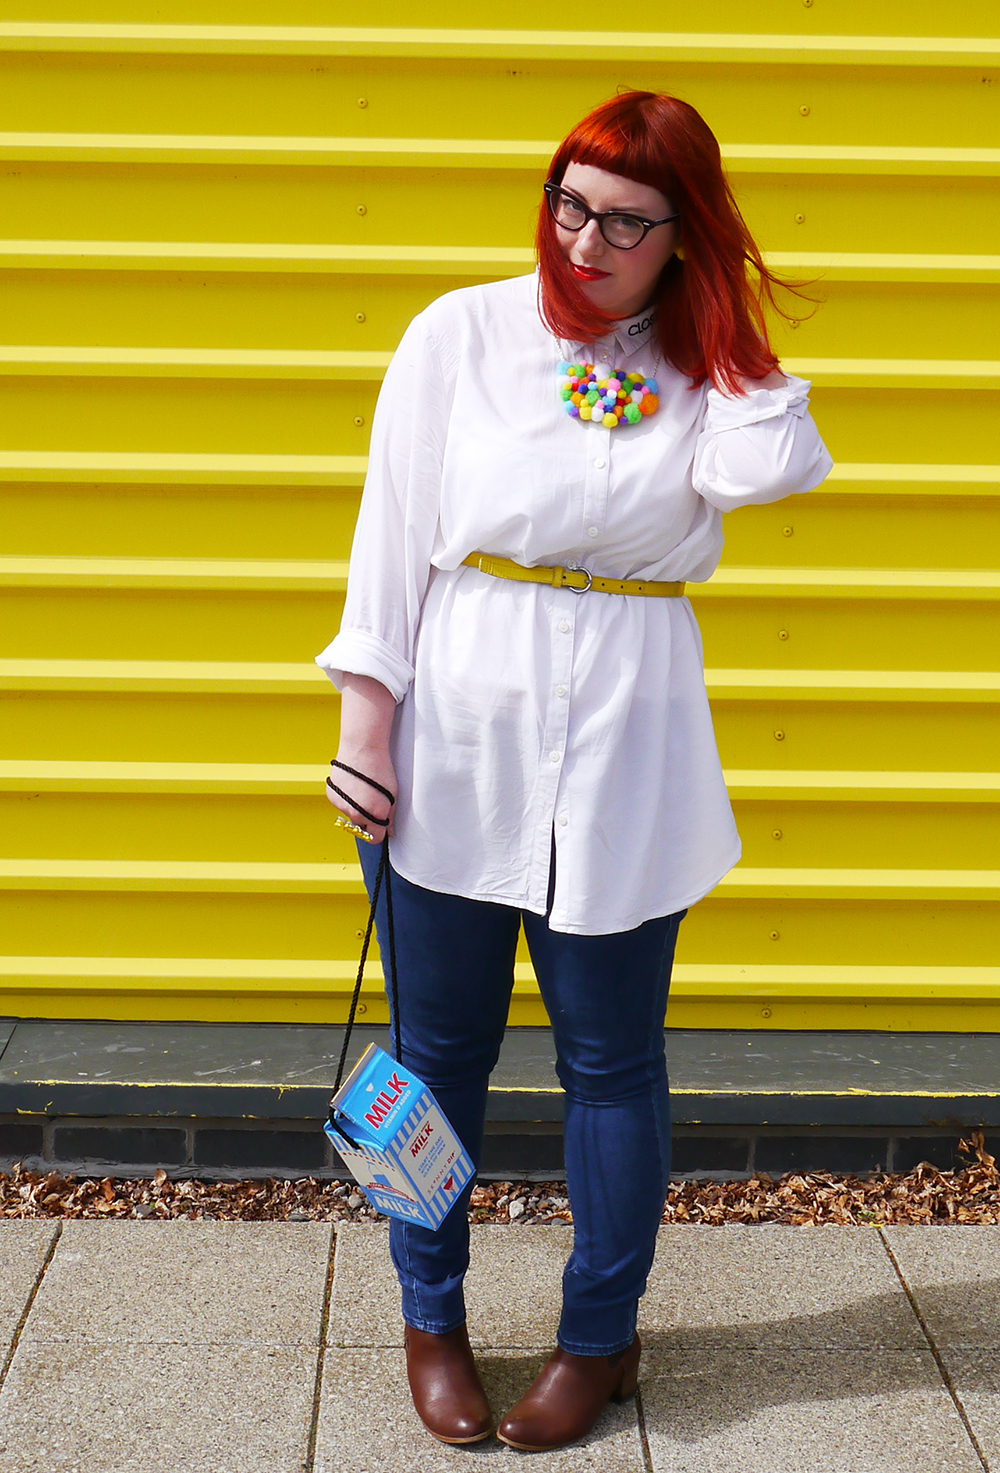 Style dby Helen, Scottish Blogger, red hair, ginger style, cat eye glasses, Dundee blogger, Dundee style, Monki shirt, simple white shirt, blue jeans style, topshop jean, yellow belt. skinny belt, belted shirt, milk bag, novelty bag, Skinnydip London bag, Zara brown boots, brown boots, chelsea boots, pom pom necklace, statement necklace, DIY necklace, handmade style, colourful style, colourful outfit, colourful street style, bright ootd, bonnie bling, bonnie bling name ring, yellow ring